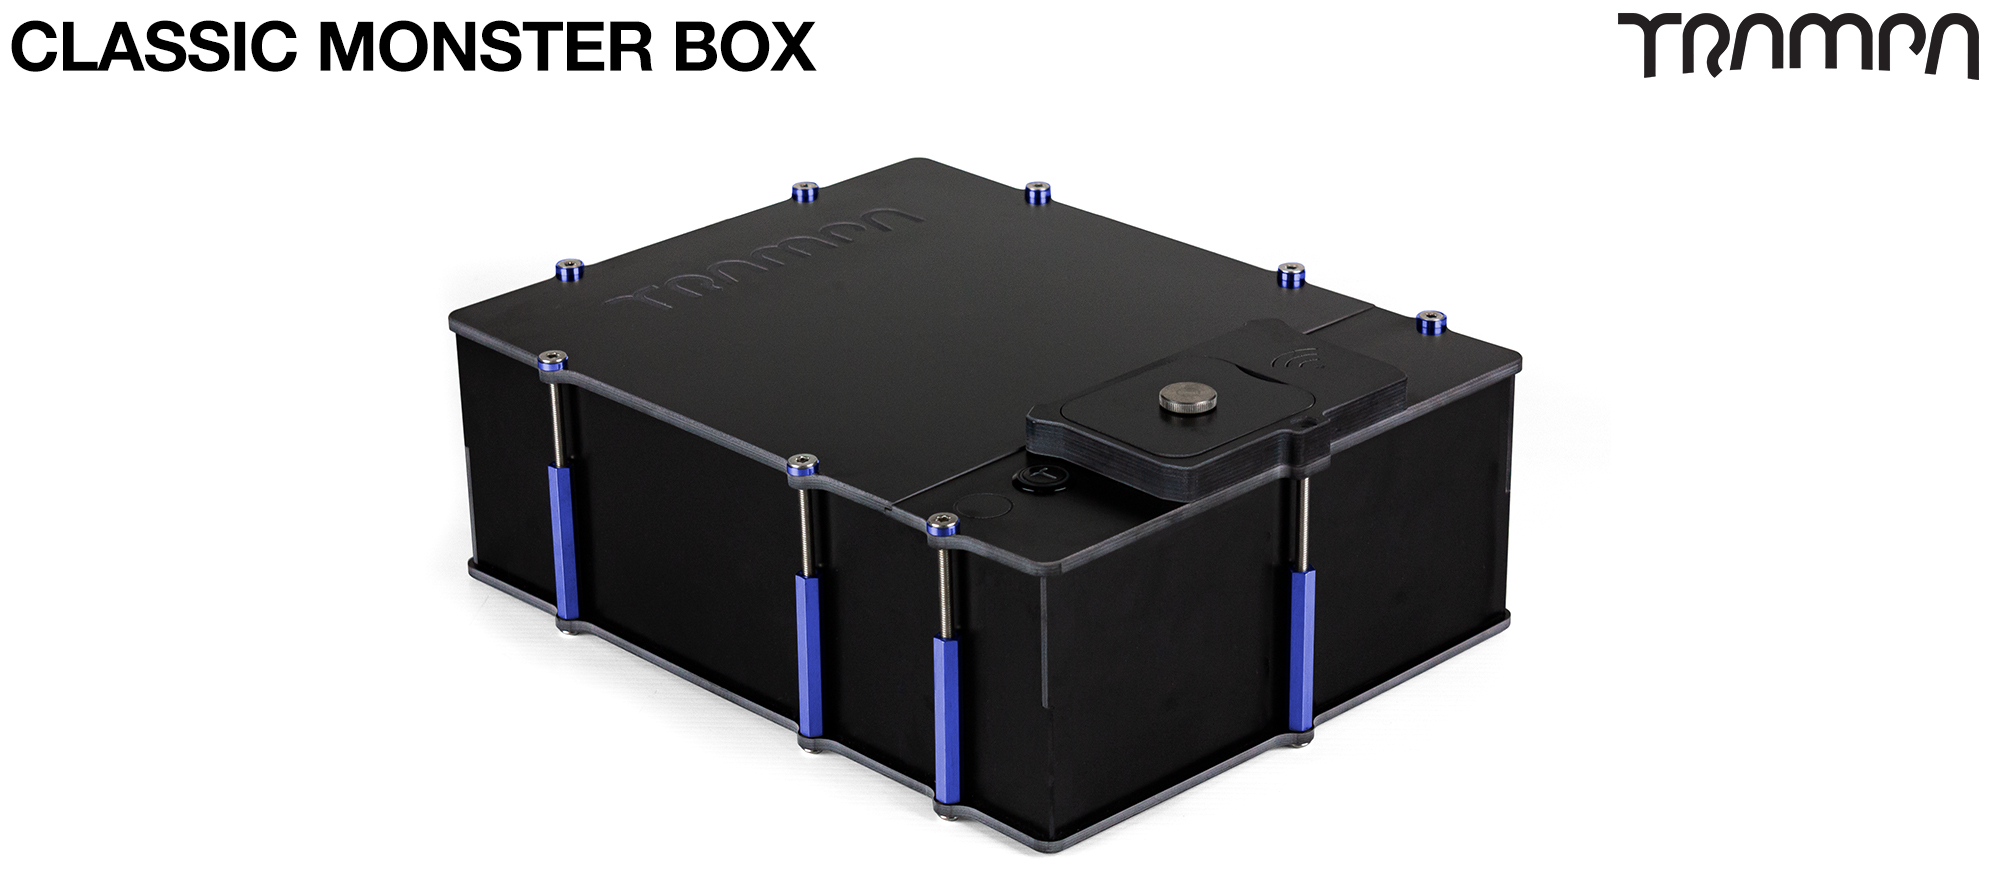 Classic MONSTER Box MkIV fits 84x 18650 cells to give 12s7p 21A or 2x22000 mAh Lipos & has Panels to fit any of the TRAMPA VESC Speed controllers, NO VESC Mounting Panel